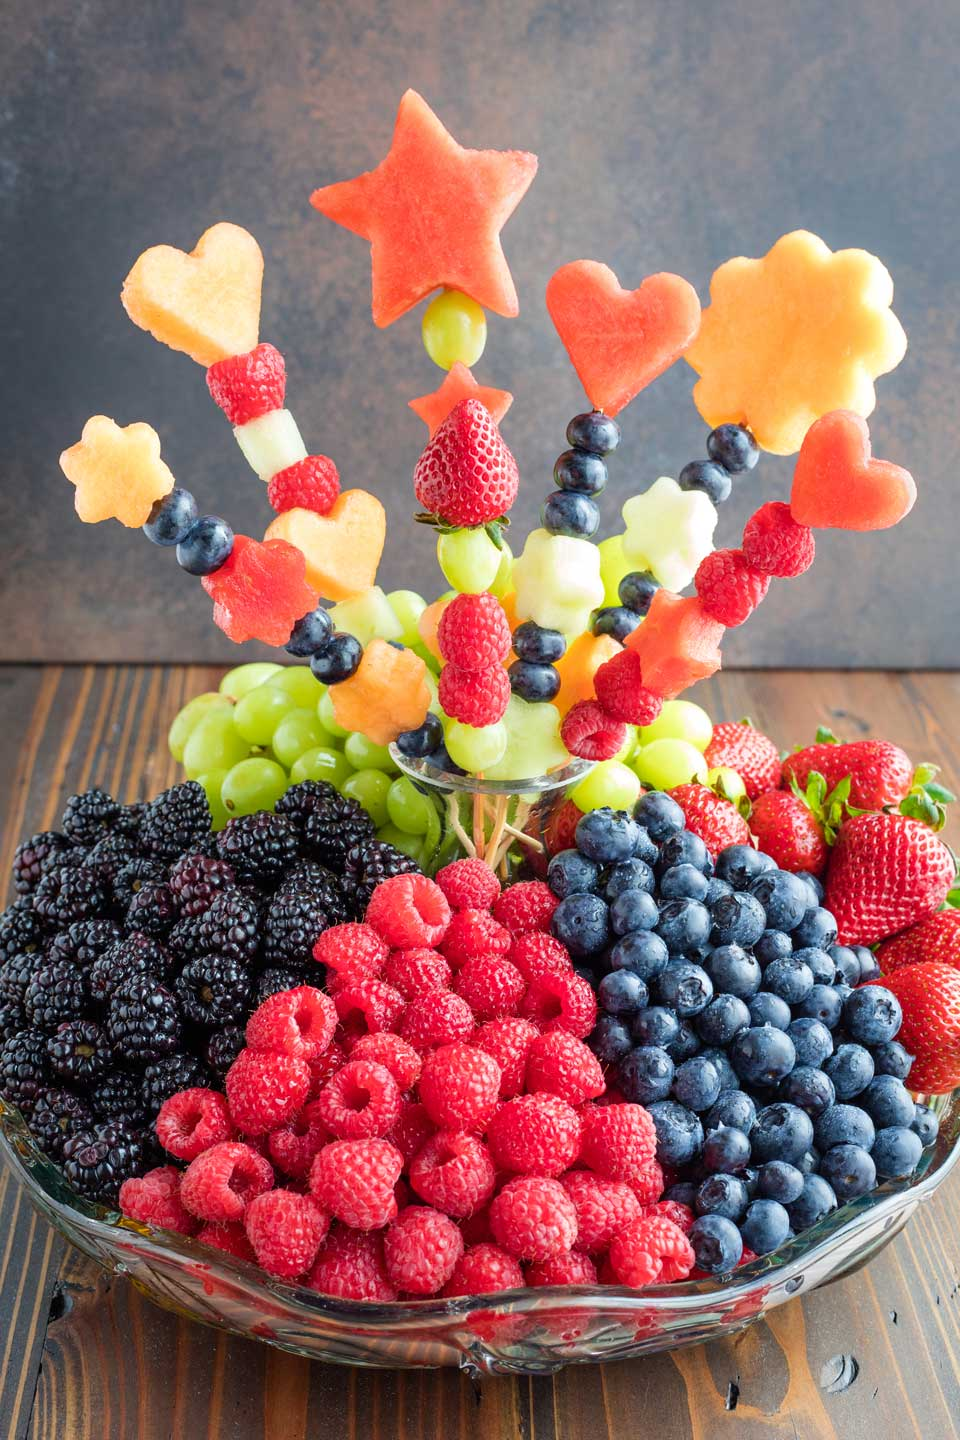 a heaping fruit tray with piles of blackberries, raspberries, blueberries, strawberries and green grapes, and a fruit bouquet at its center